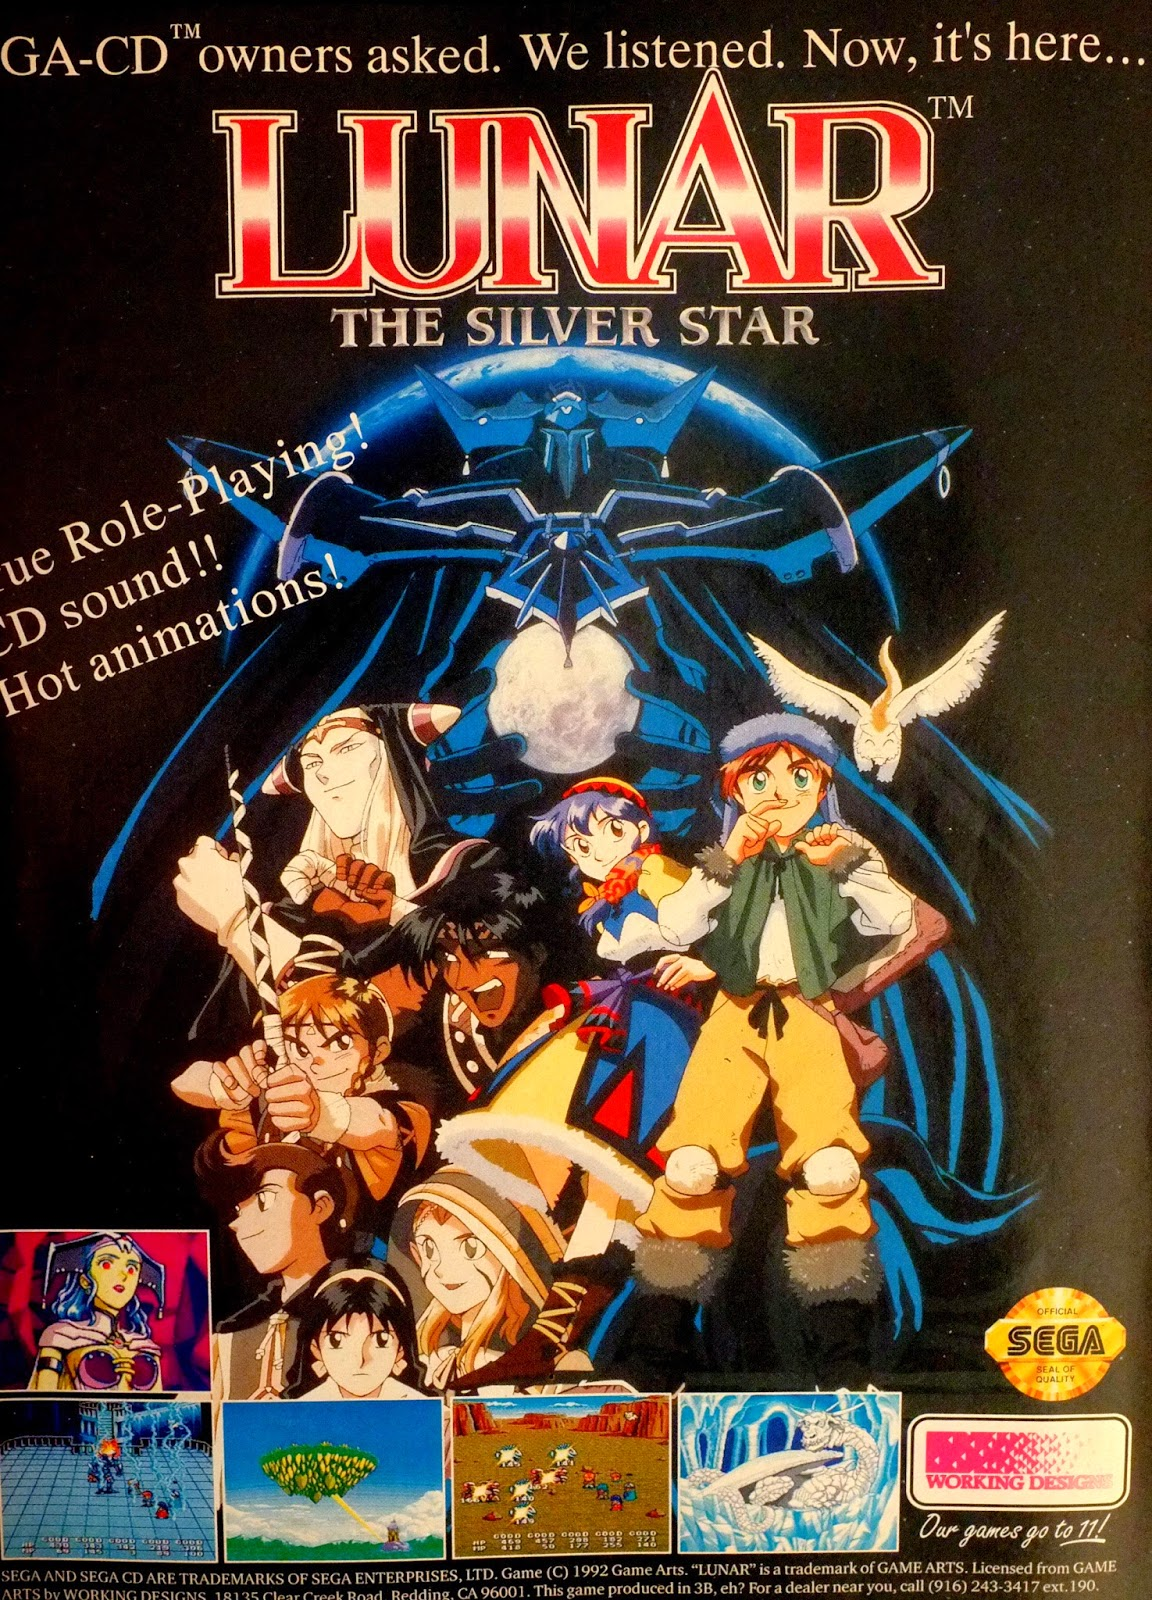 Lunar. The Silver Star for Sega CD advertisement